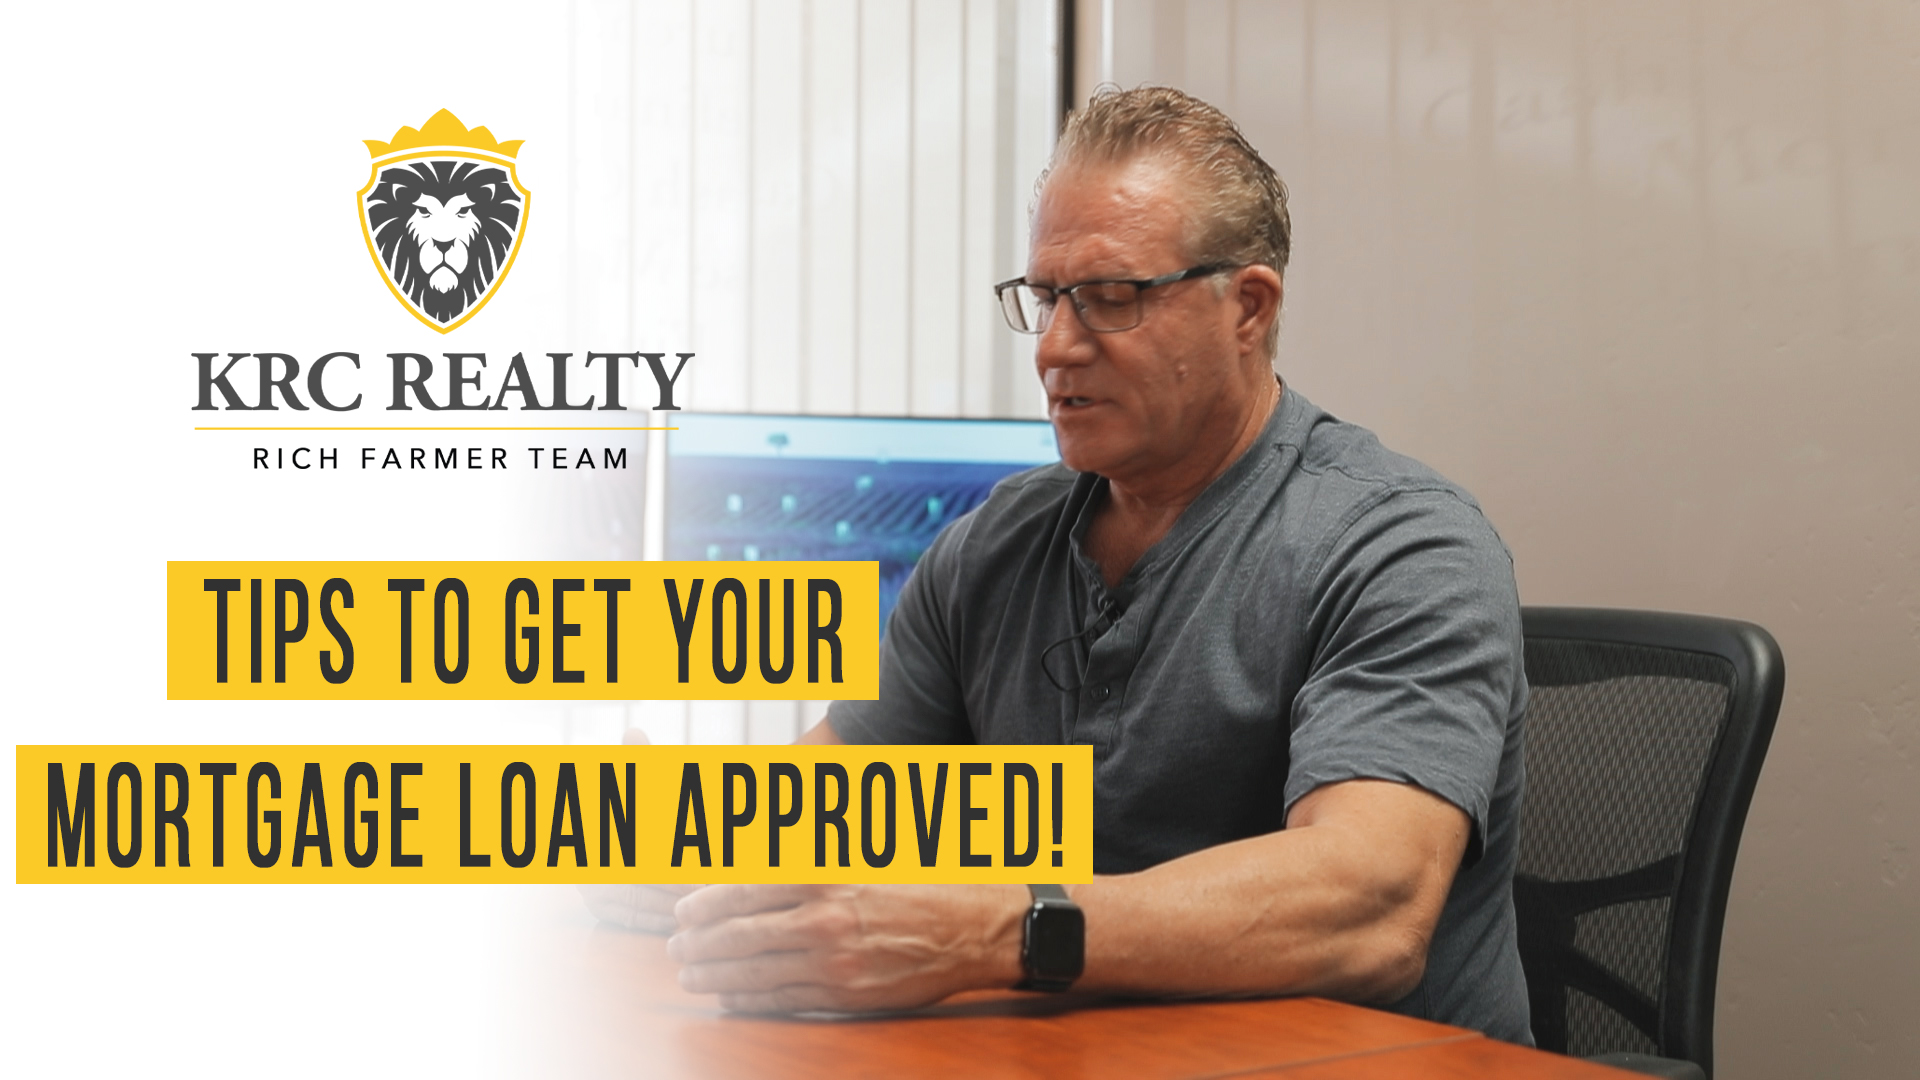 WATCH THIS BEFORE APPLYING FOR A MORTGAGE LOAN!